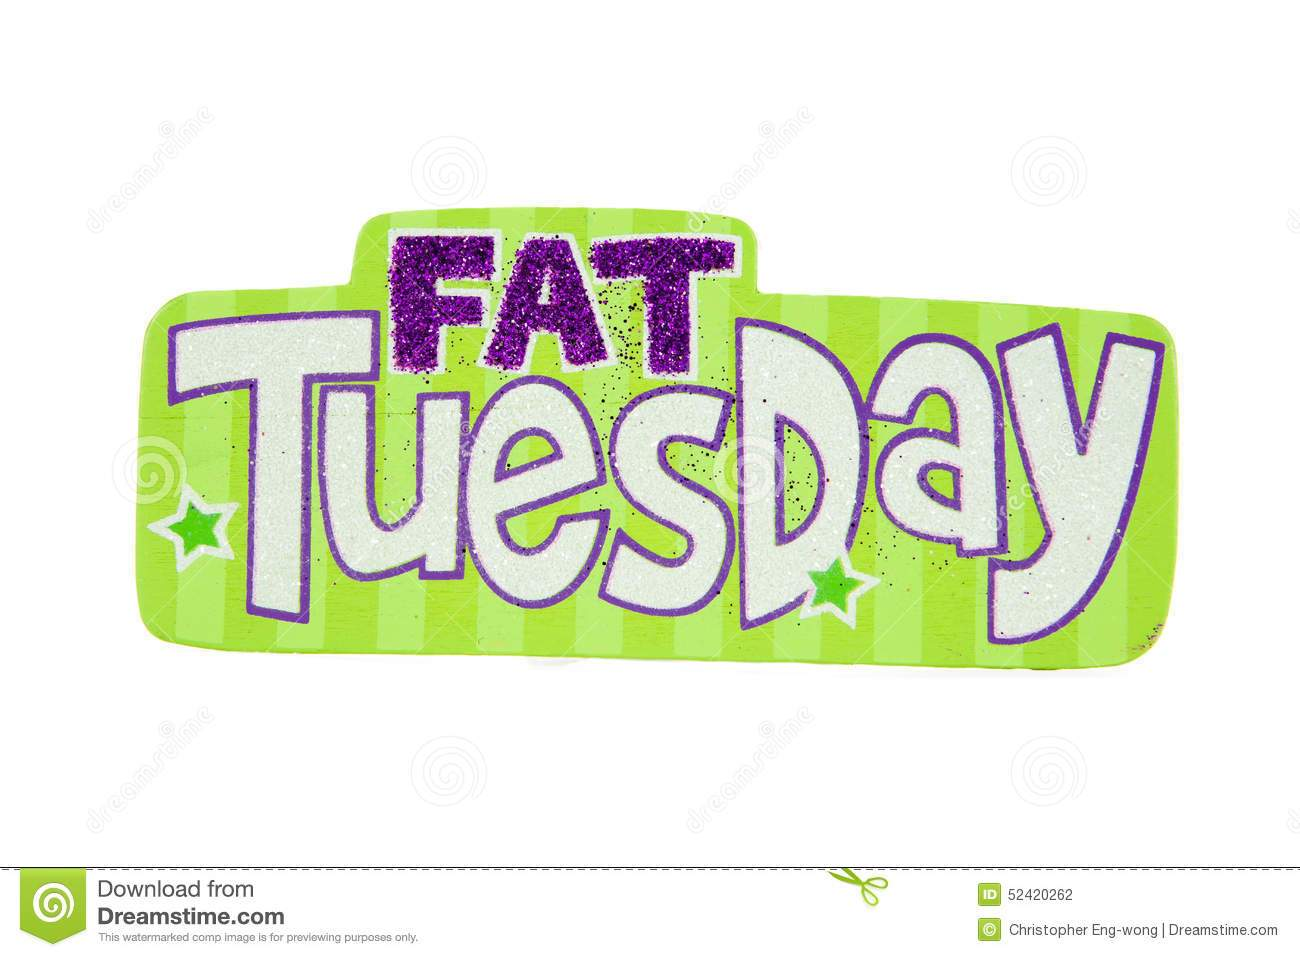 Fat tuesday clipart images jpg black and white Fat tuesday clipart 6 » Clipart Portal jpg black and white